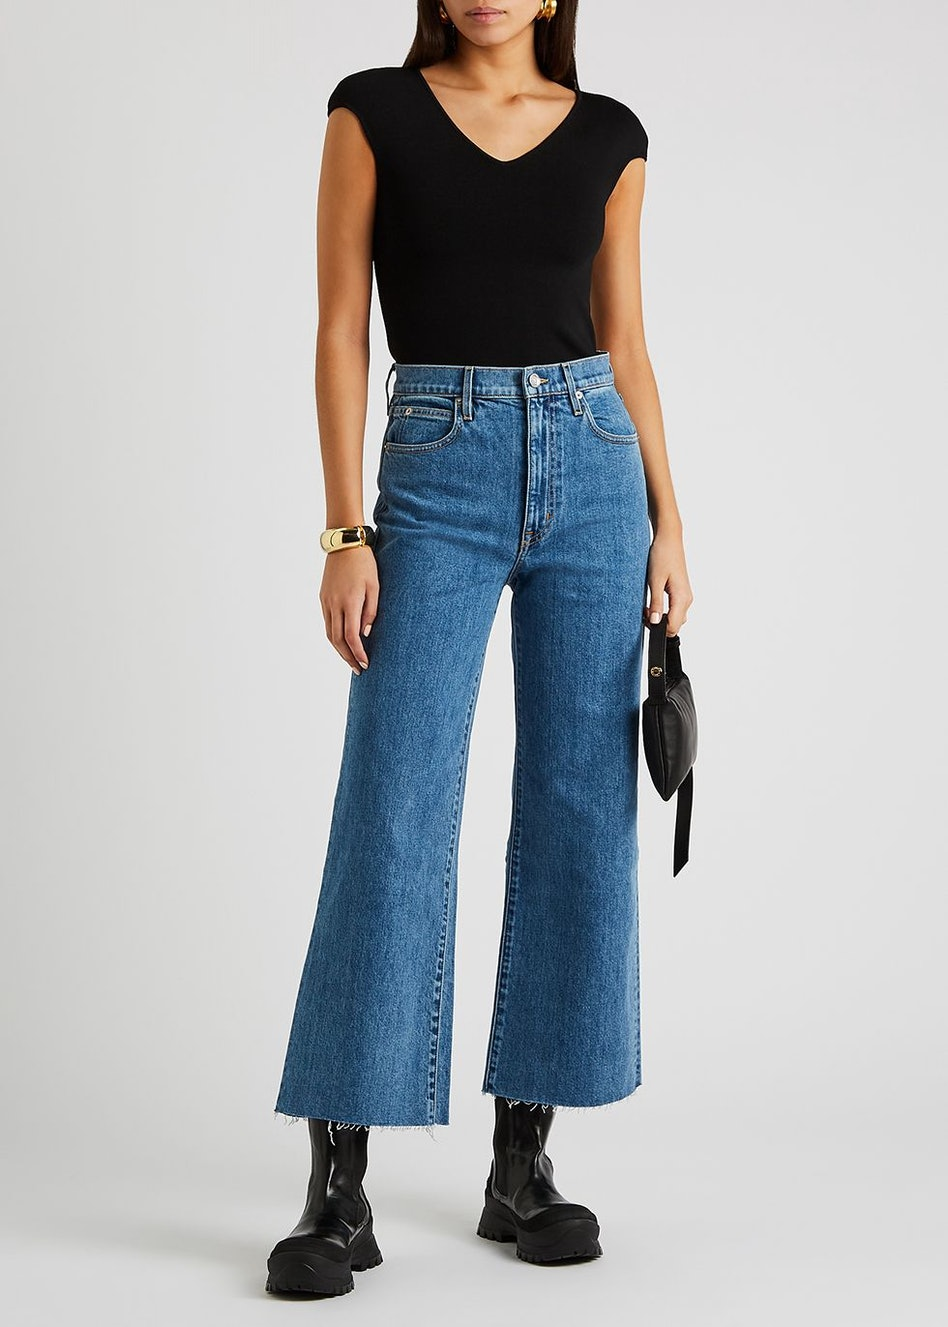 Grace blue wide-leg cropped jeans: additional image